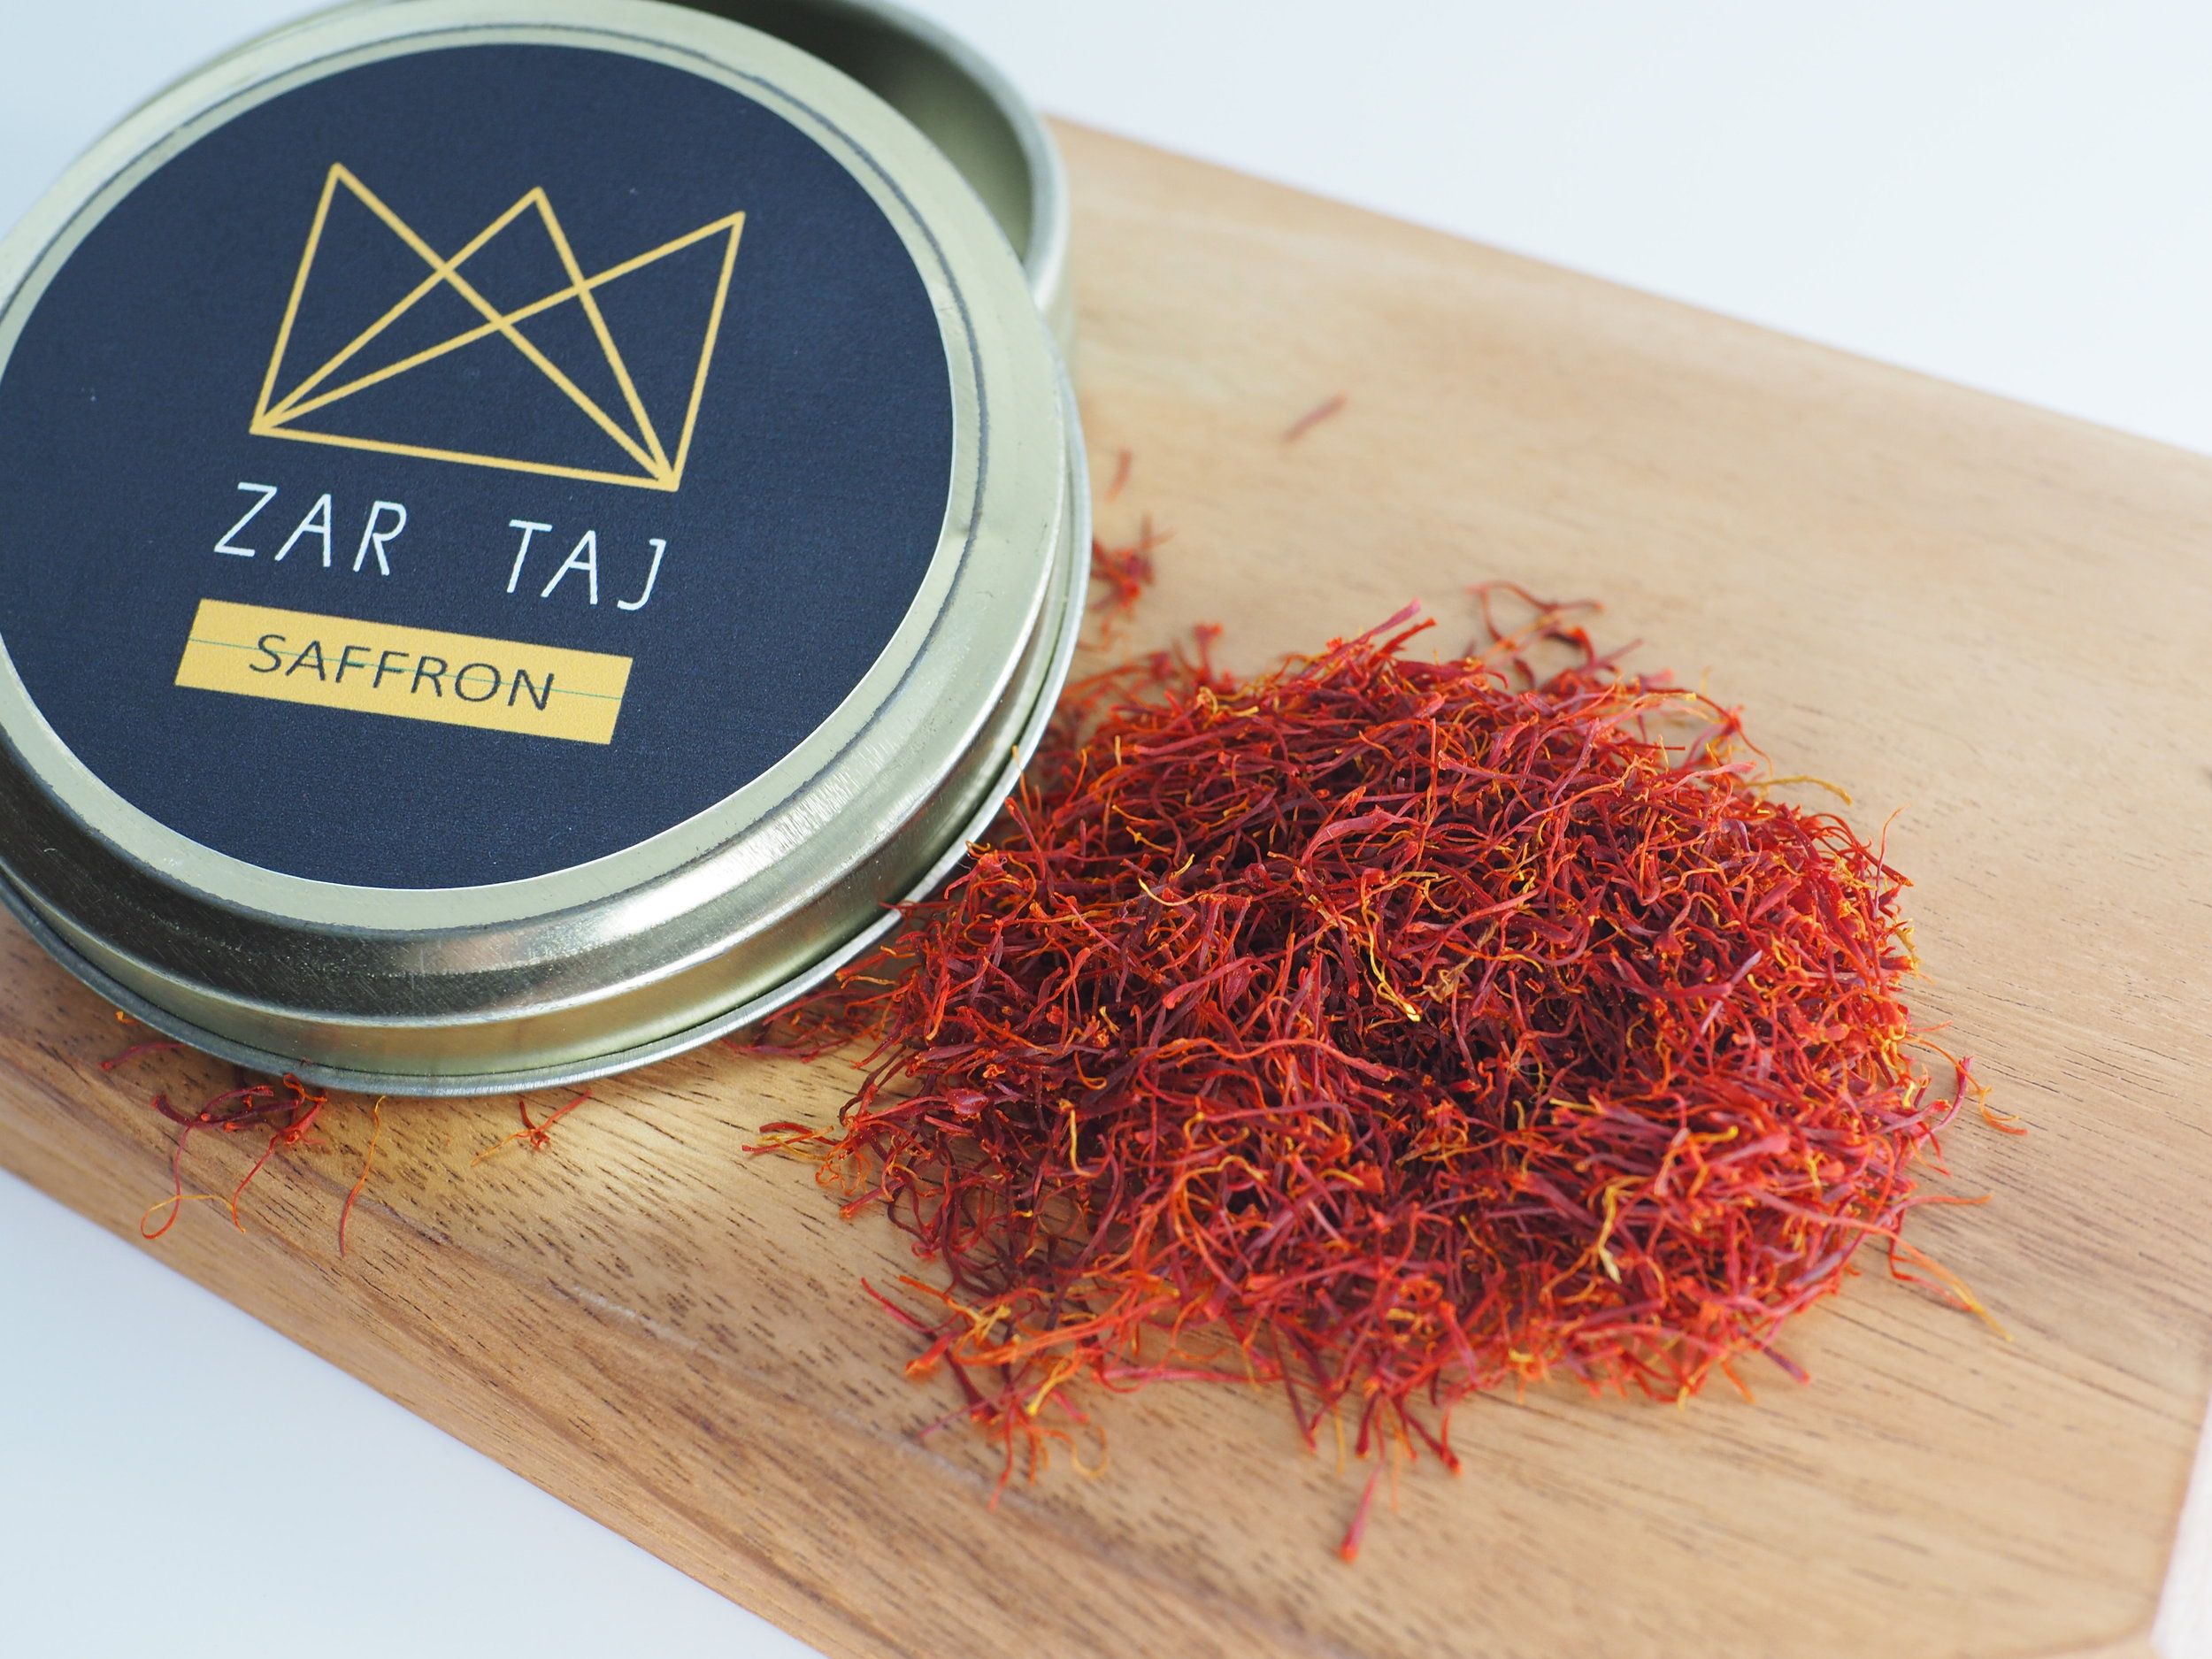 Saffron - Grown by the Zade family these saffron are premium quality from Iran. Grown and harvested by the family using traditional methods that help preserve the quality, fragrance and color.